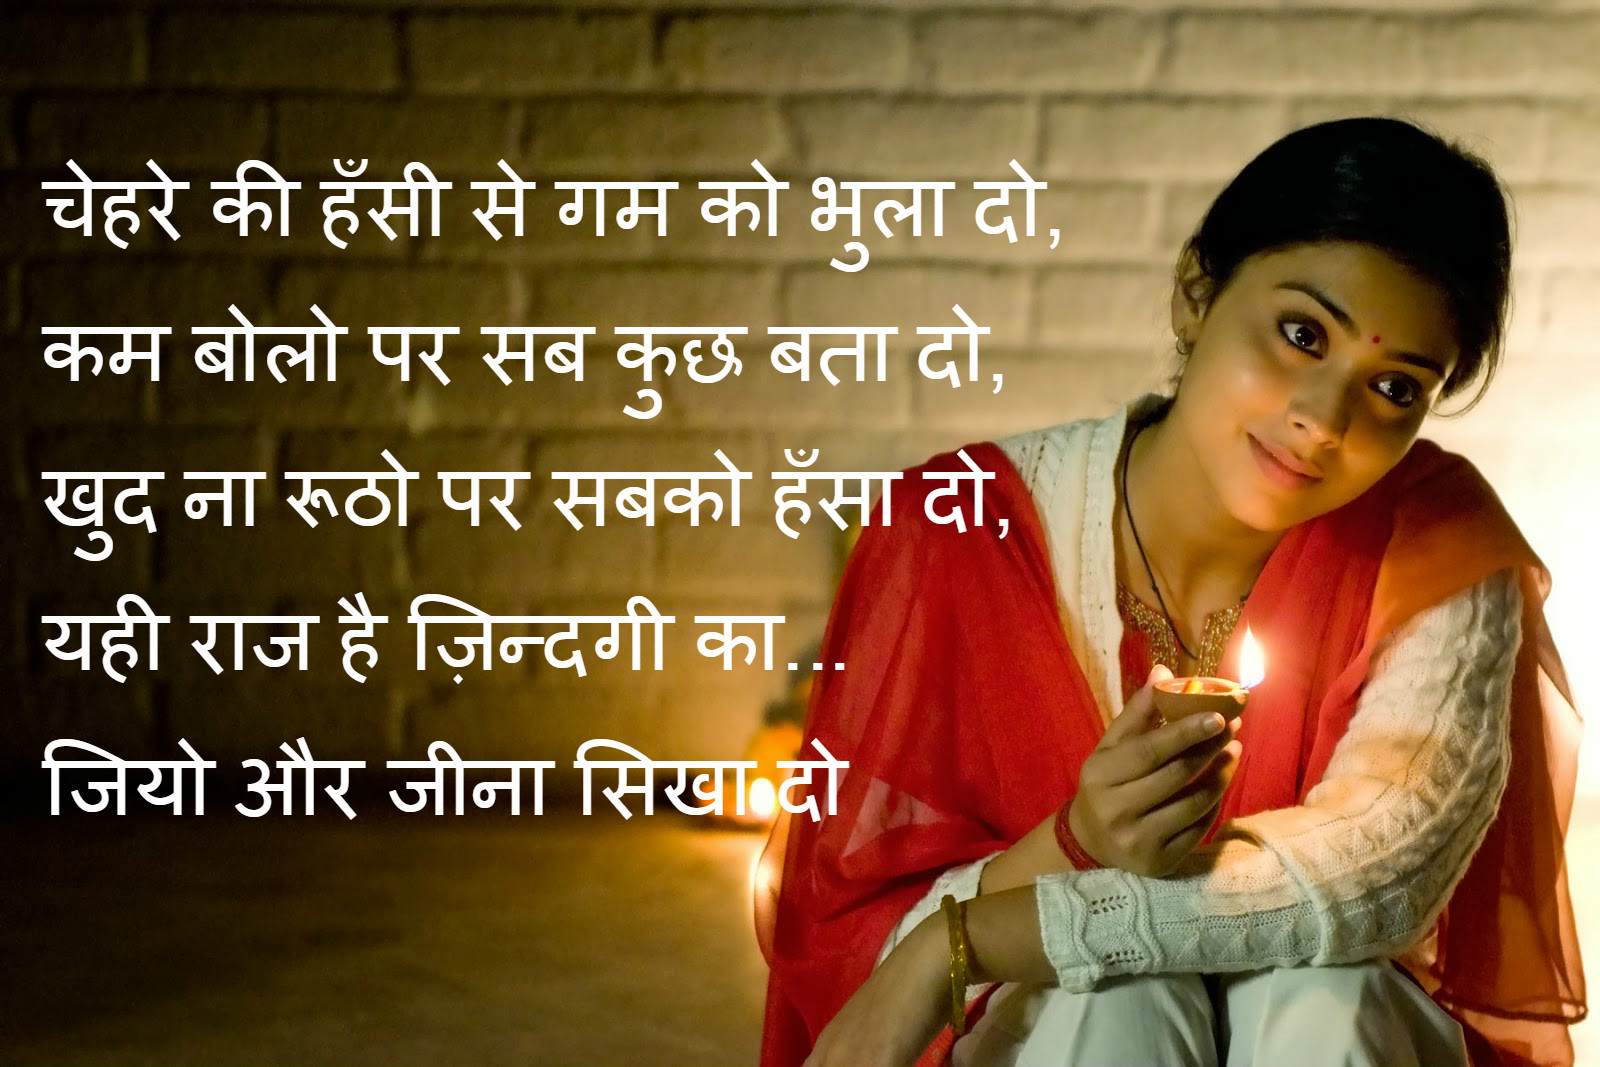 Gujarati shayari love romantic sms